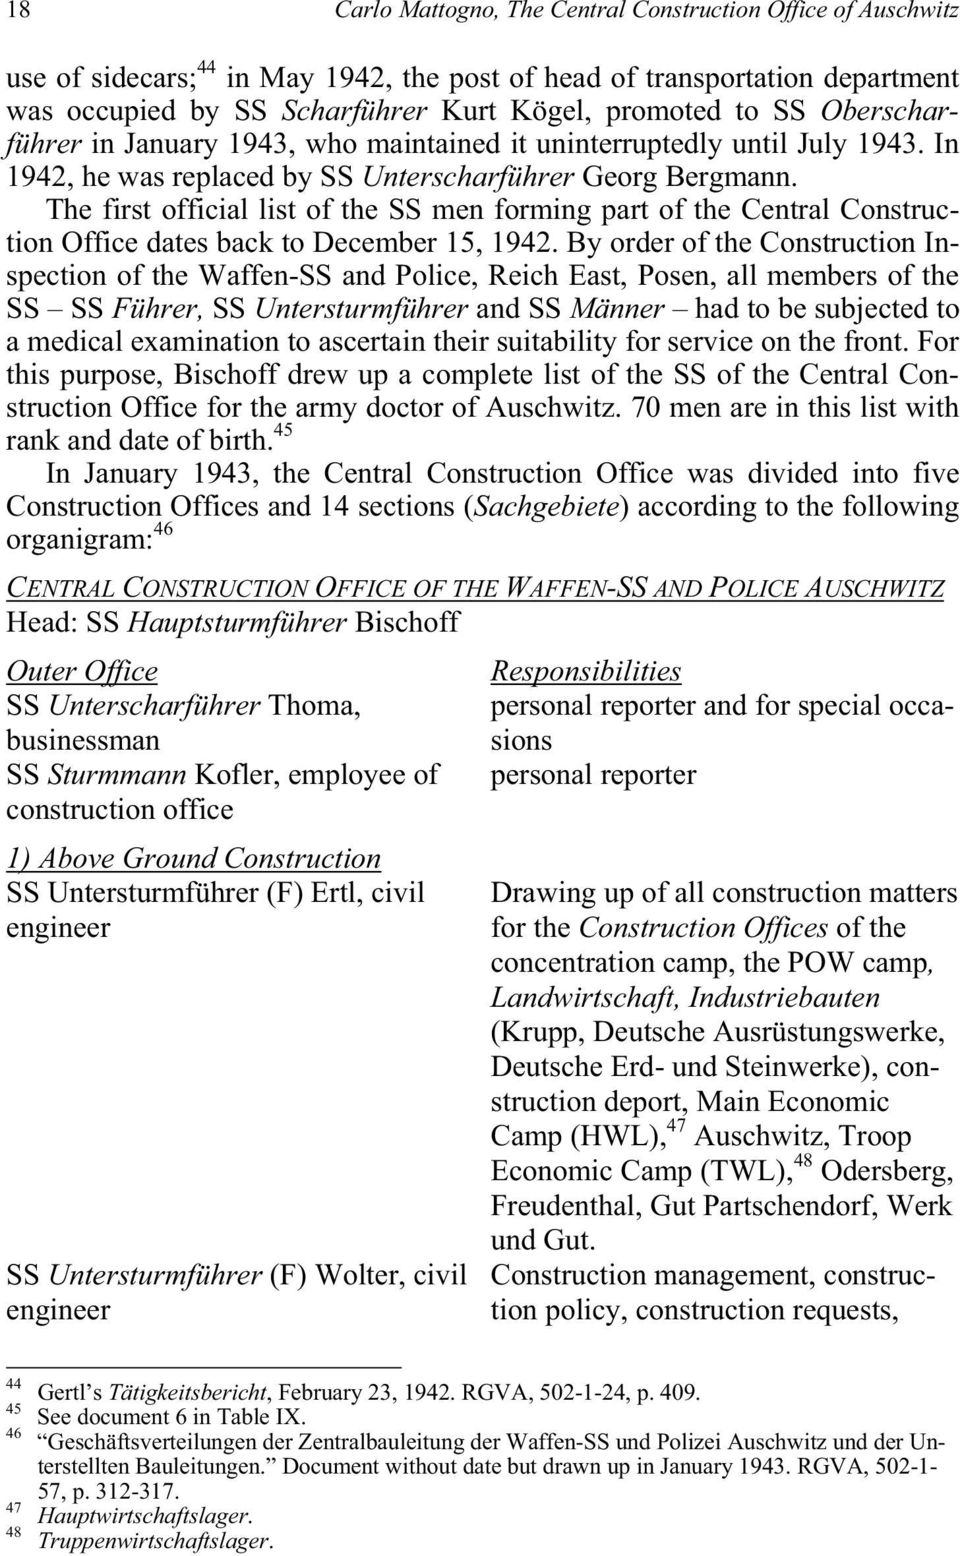 The first official list of the SS men forming part of the Central Construction Office dates back to December 15, 1942.